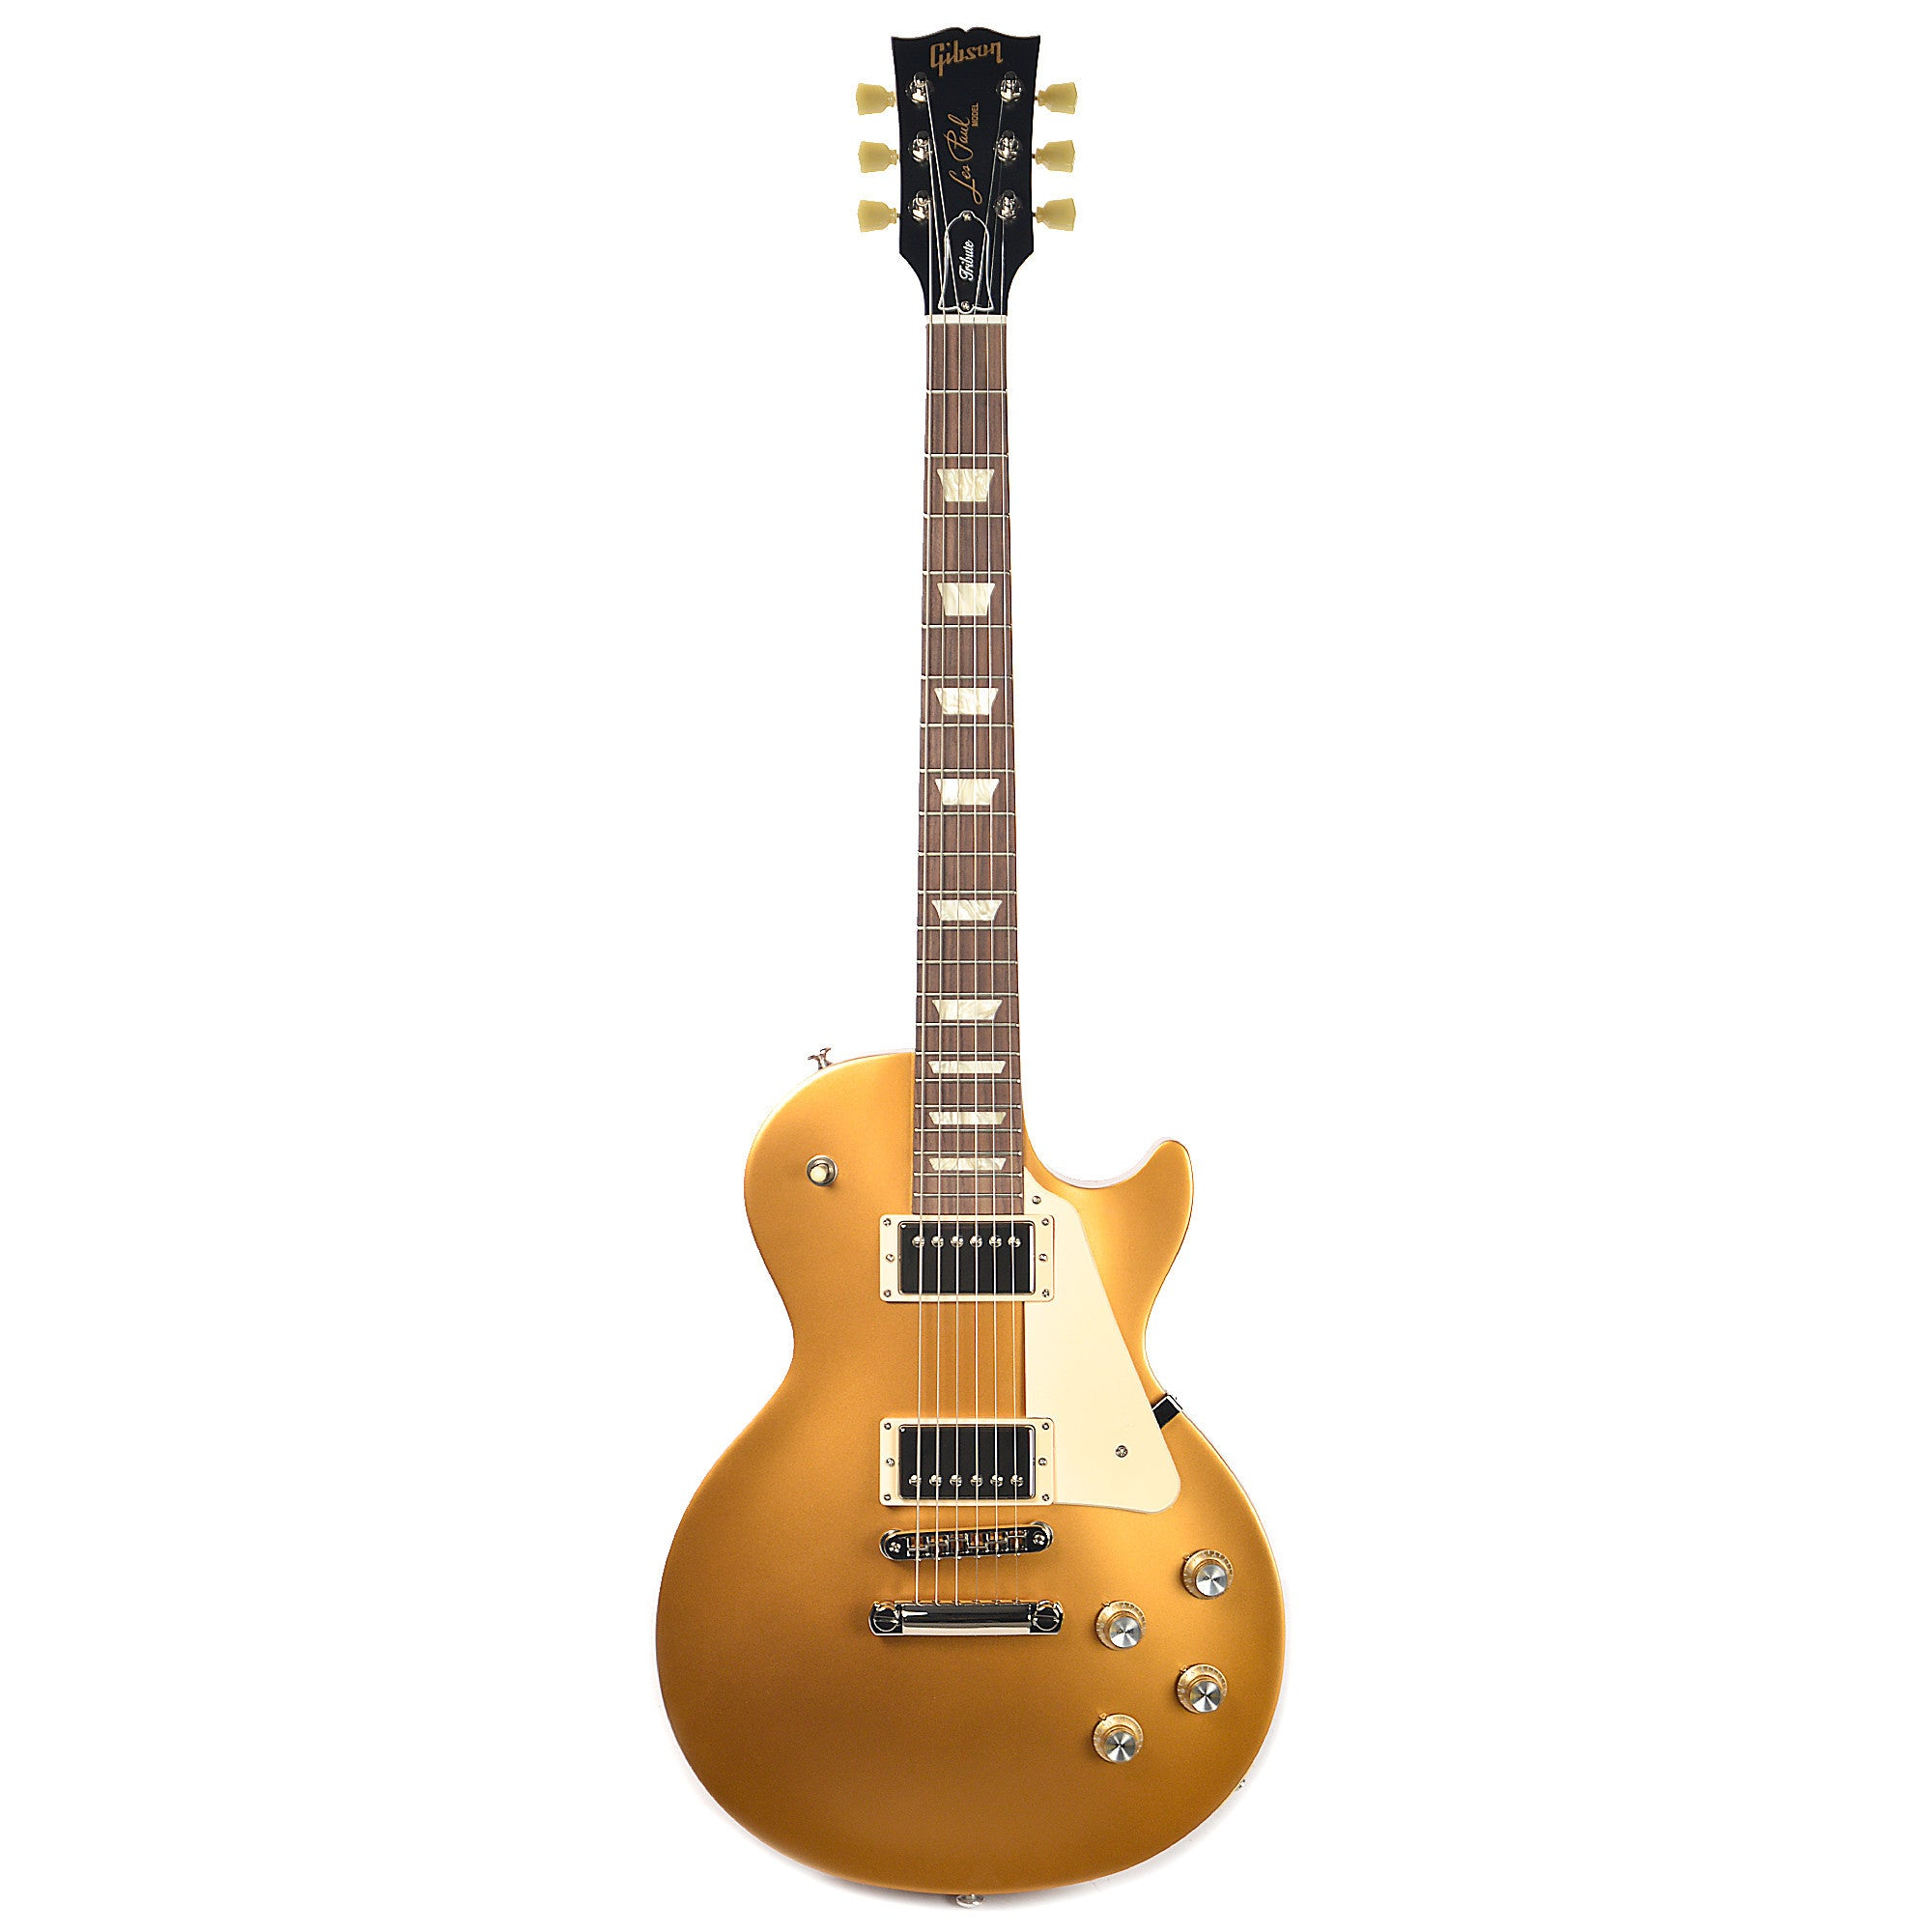 gibson usa les paul tribute t satin gold top 2017 w gig bag chicago music exchange. Black Bedroom Furniture Sets. Home Design Ideas